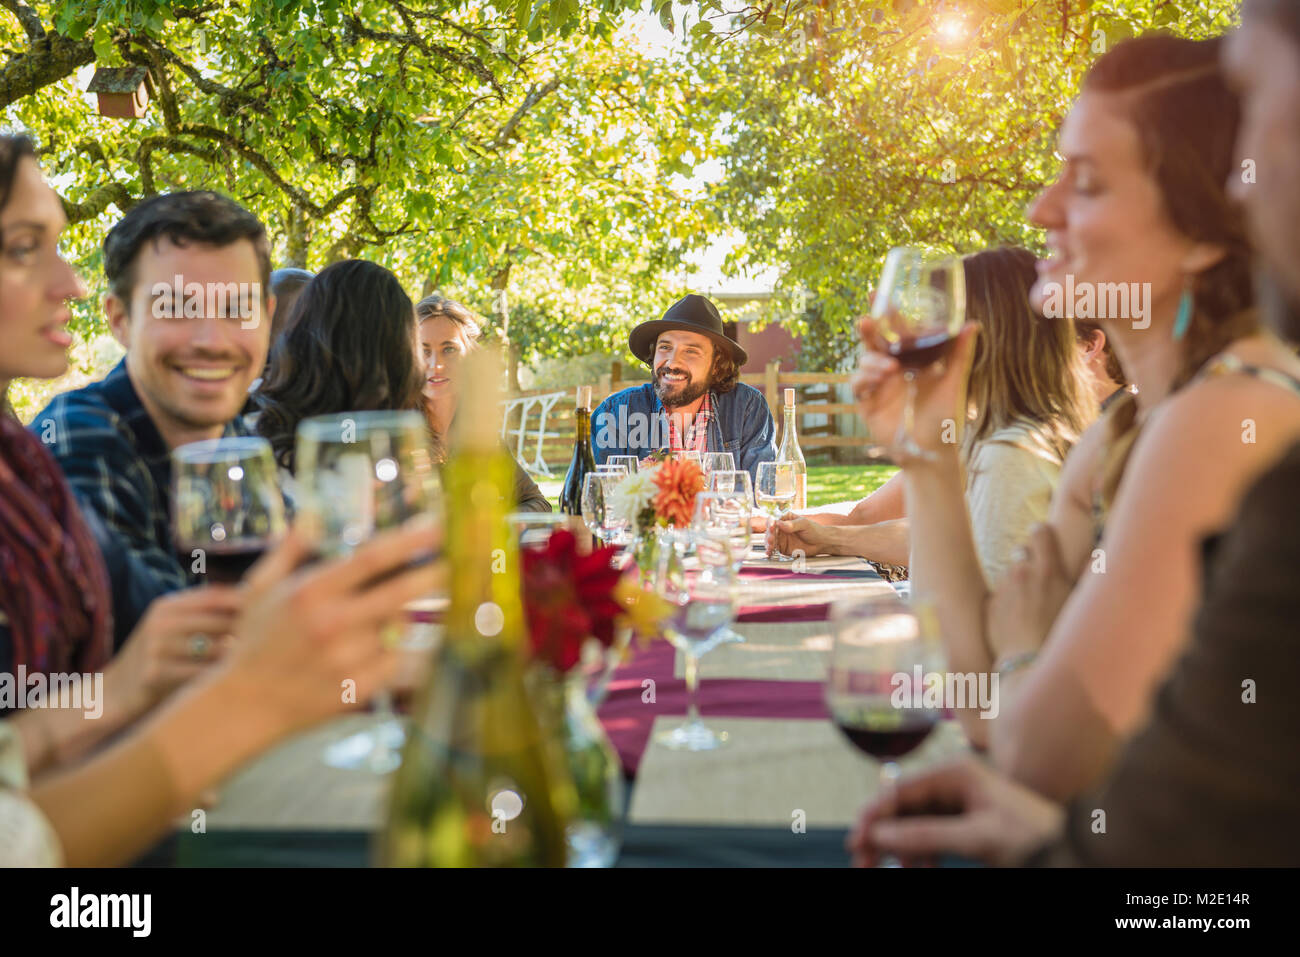 Friends drinking wine at party outdoors - Stock Image